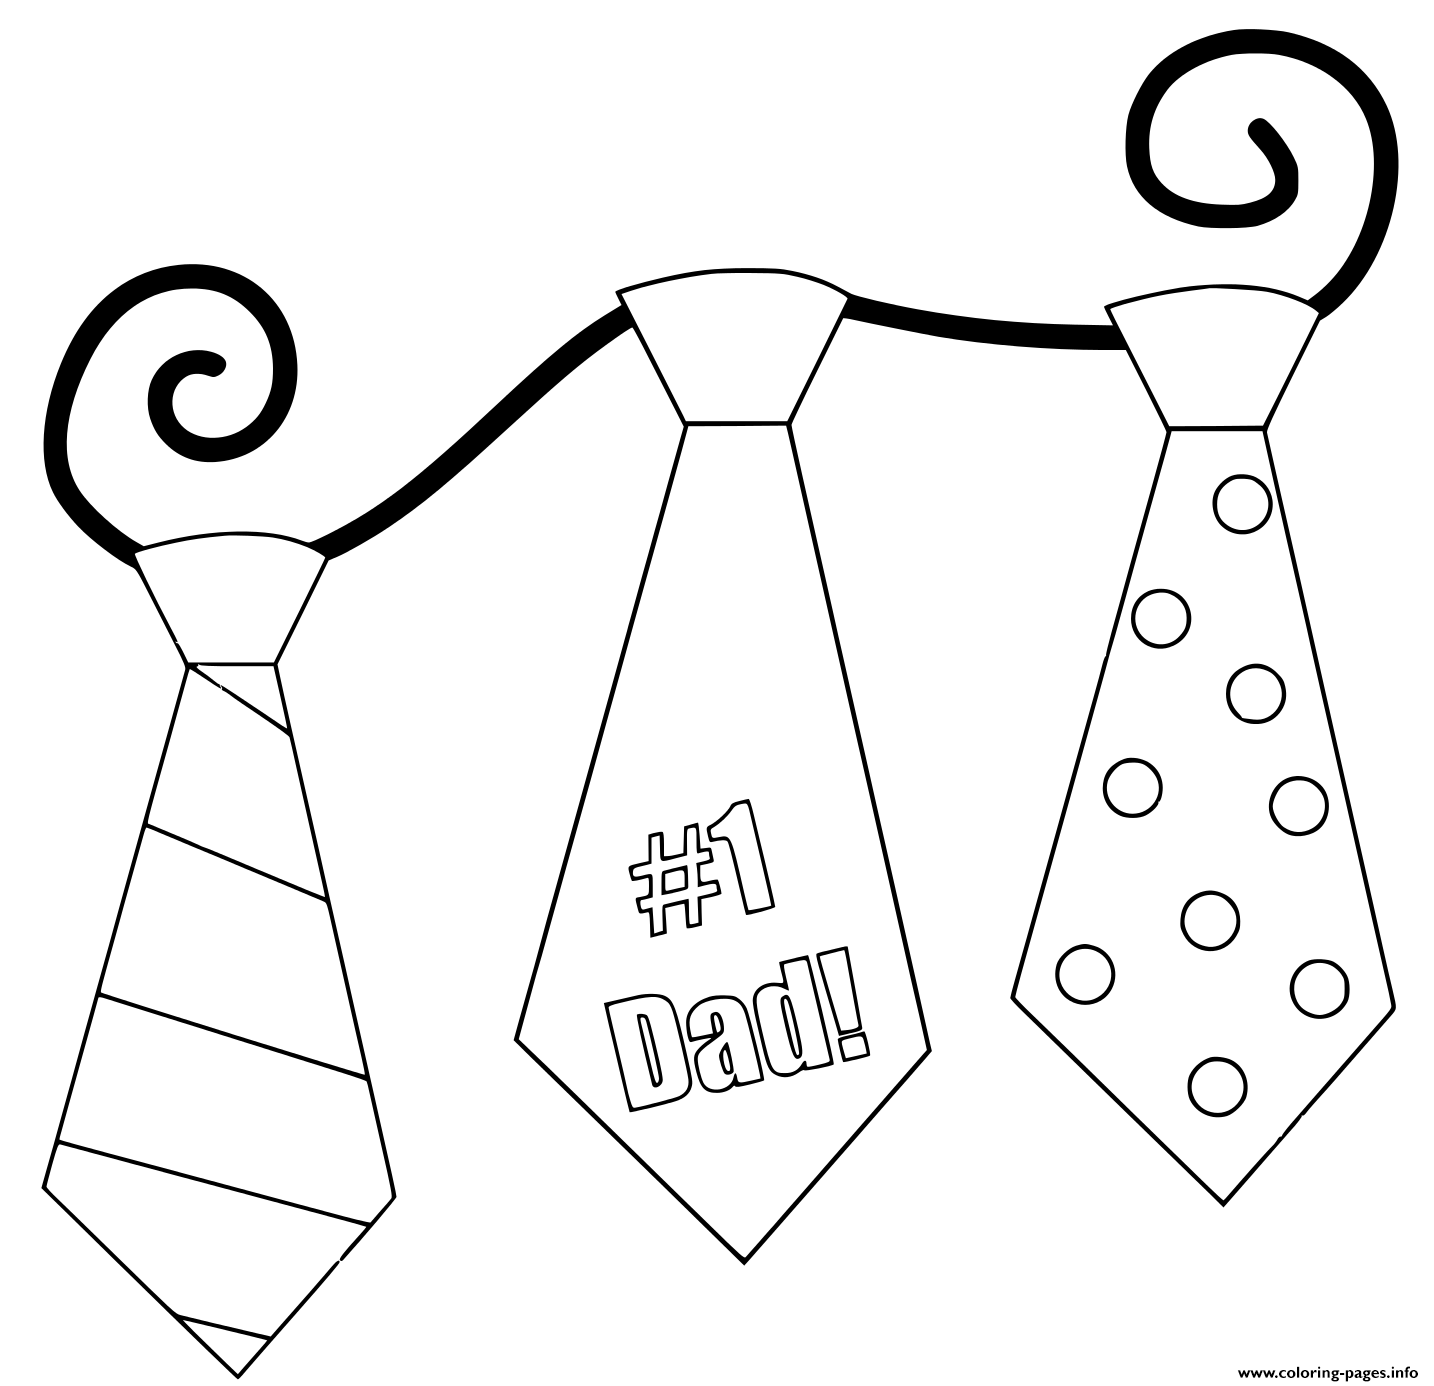 Fathers Day Ties coloring pages